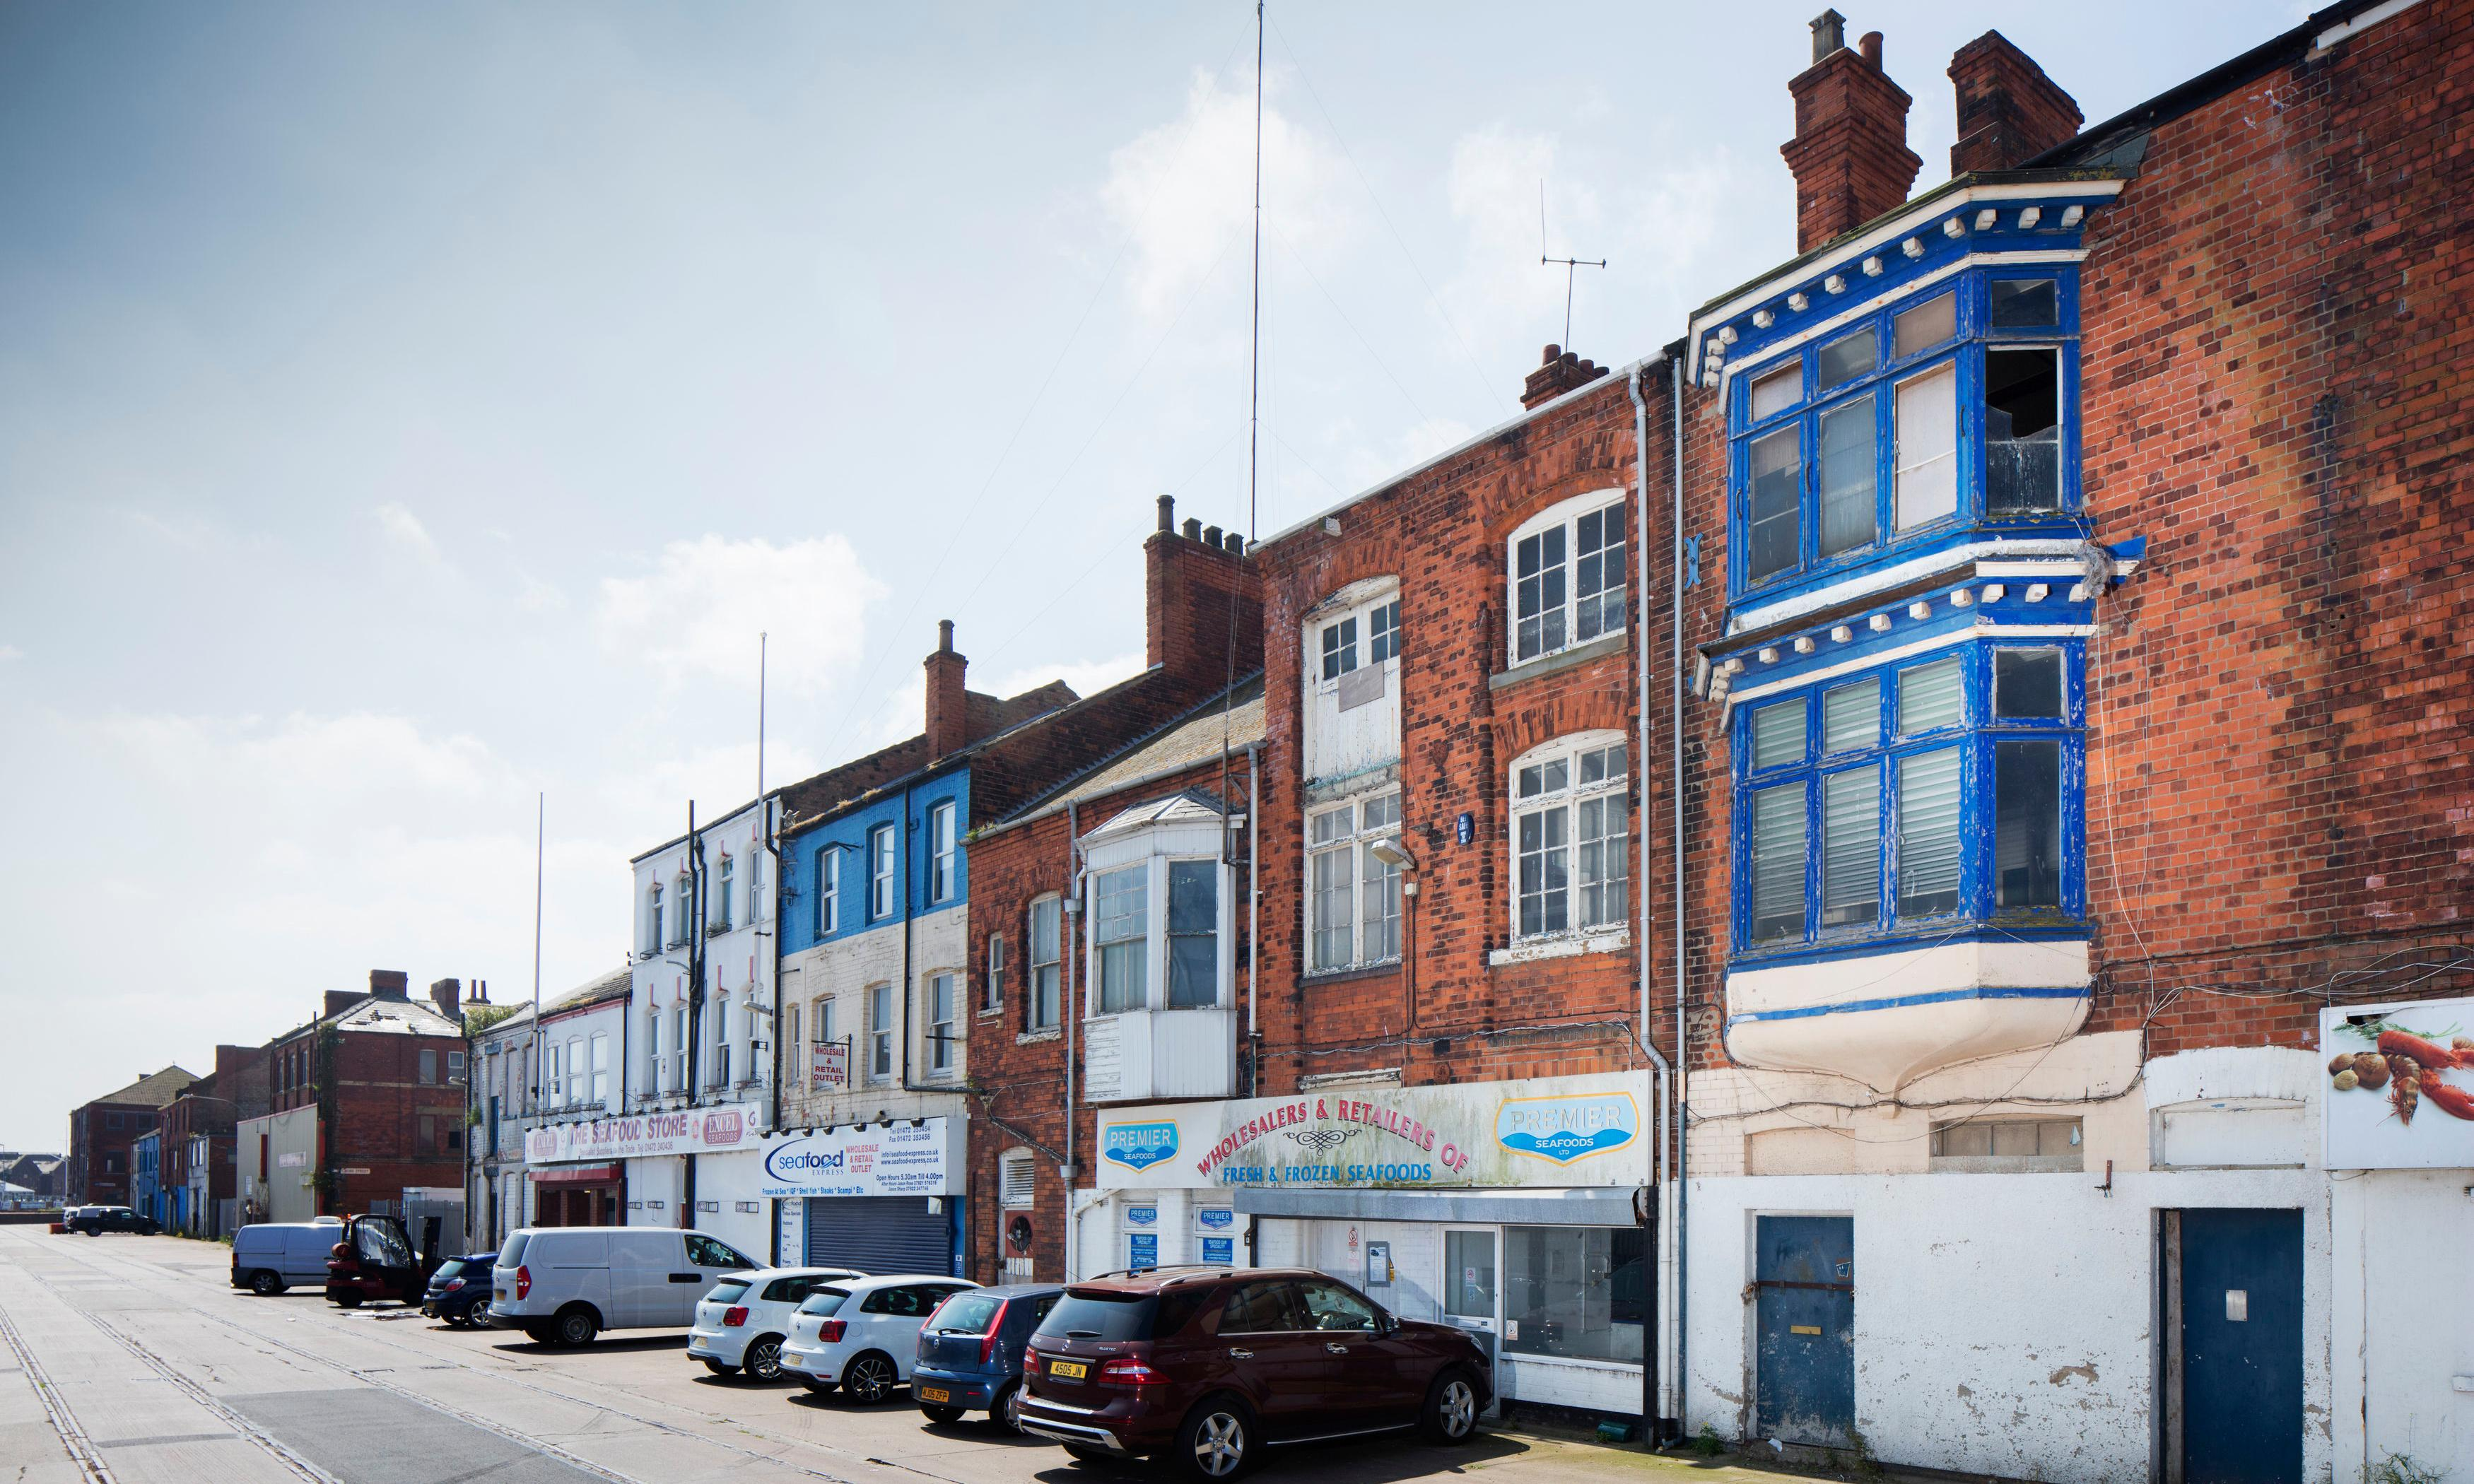 Heritage at Risk list adds knights' cave and Grimsby's Kasbah